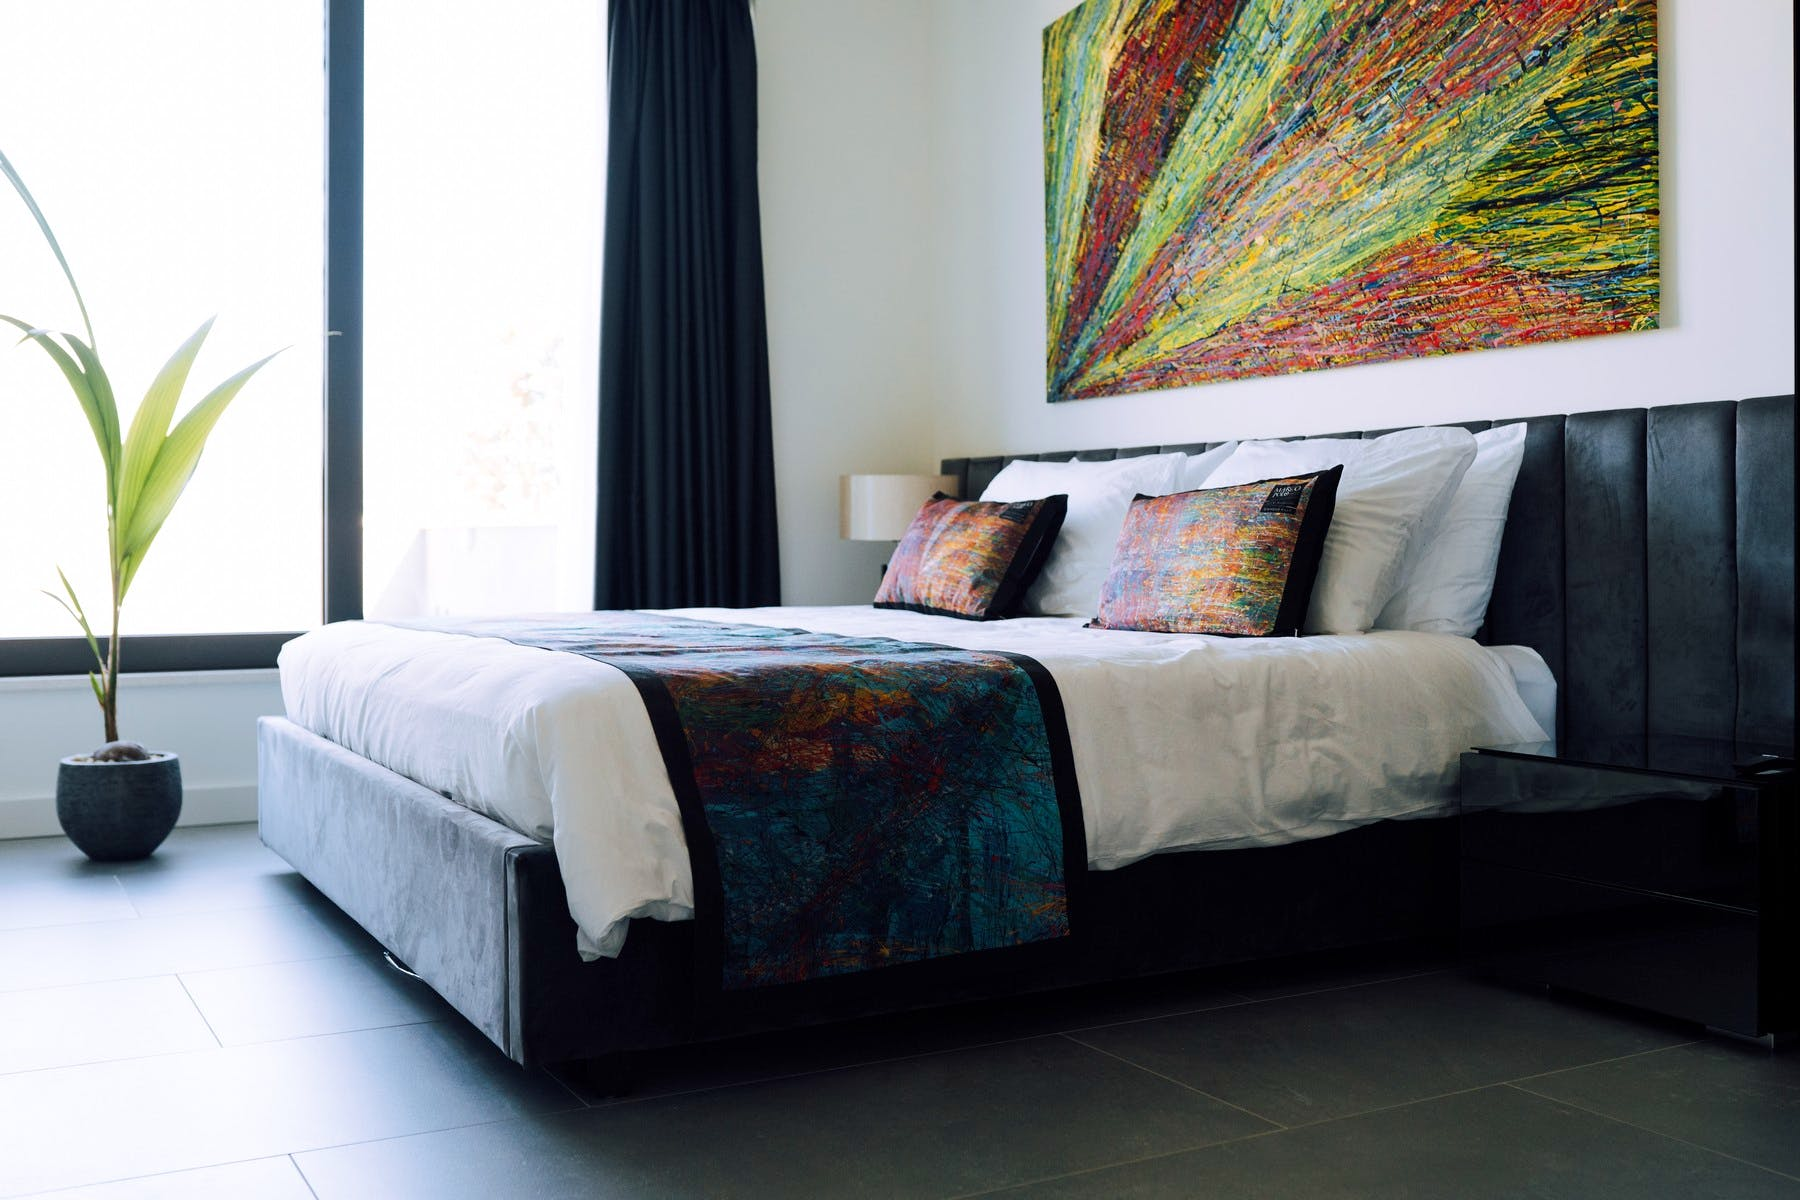 Spacious and stylish bedroom